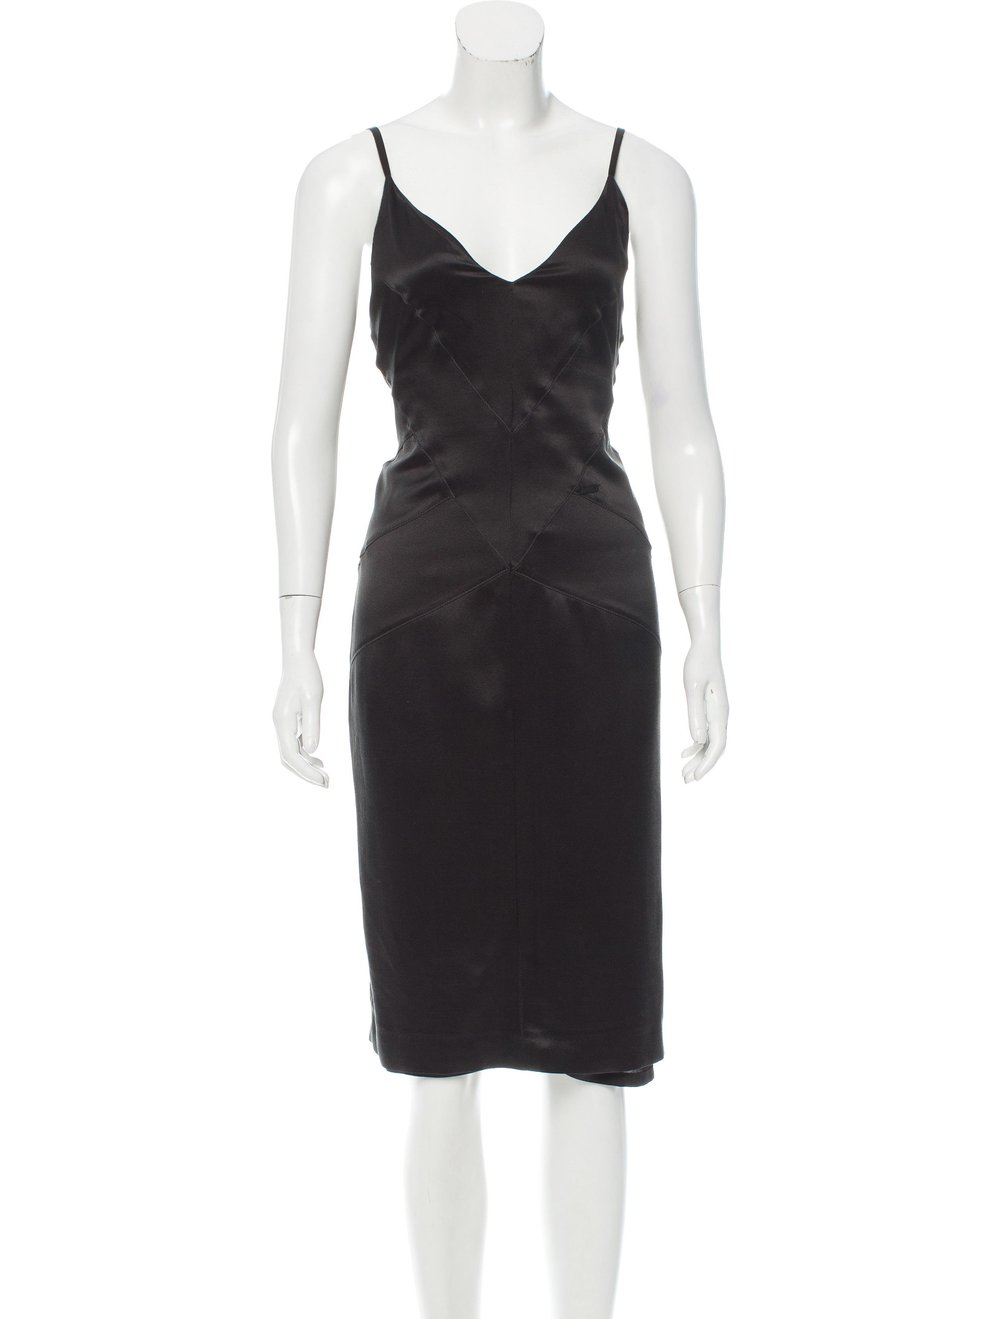 - CHANEL SLEEVELESS SILK DRESSSize: US 8$495.0020% Off Use Code: REAL